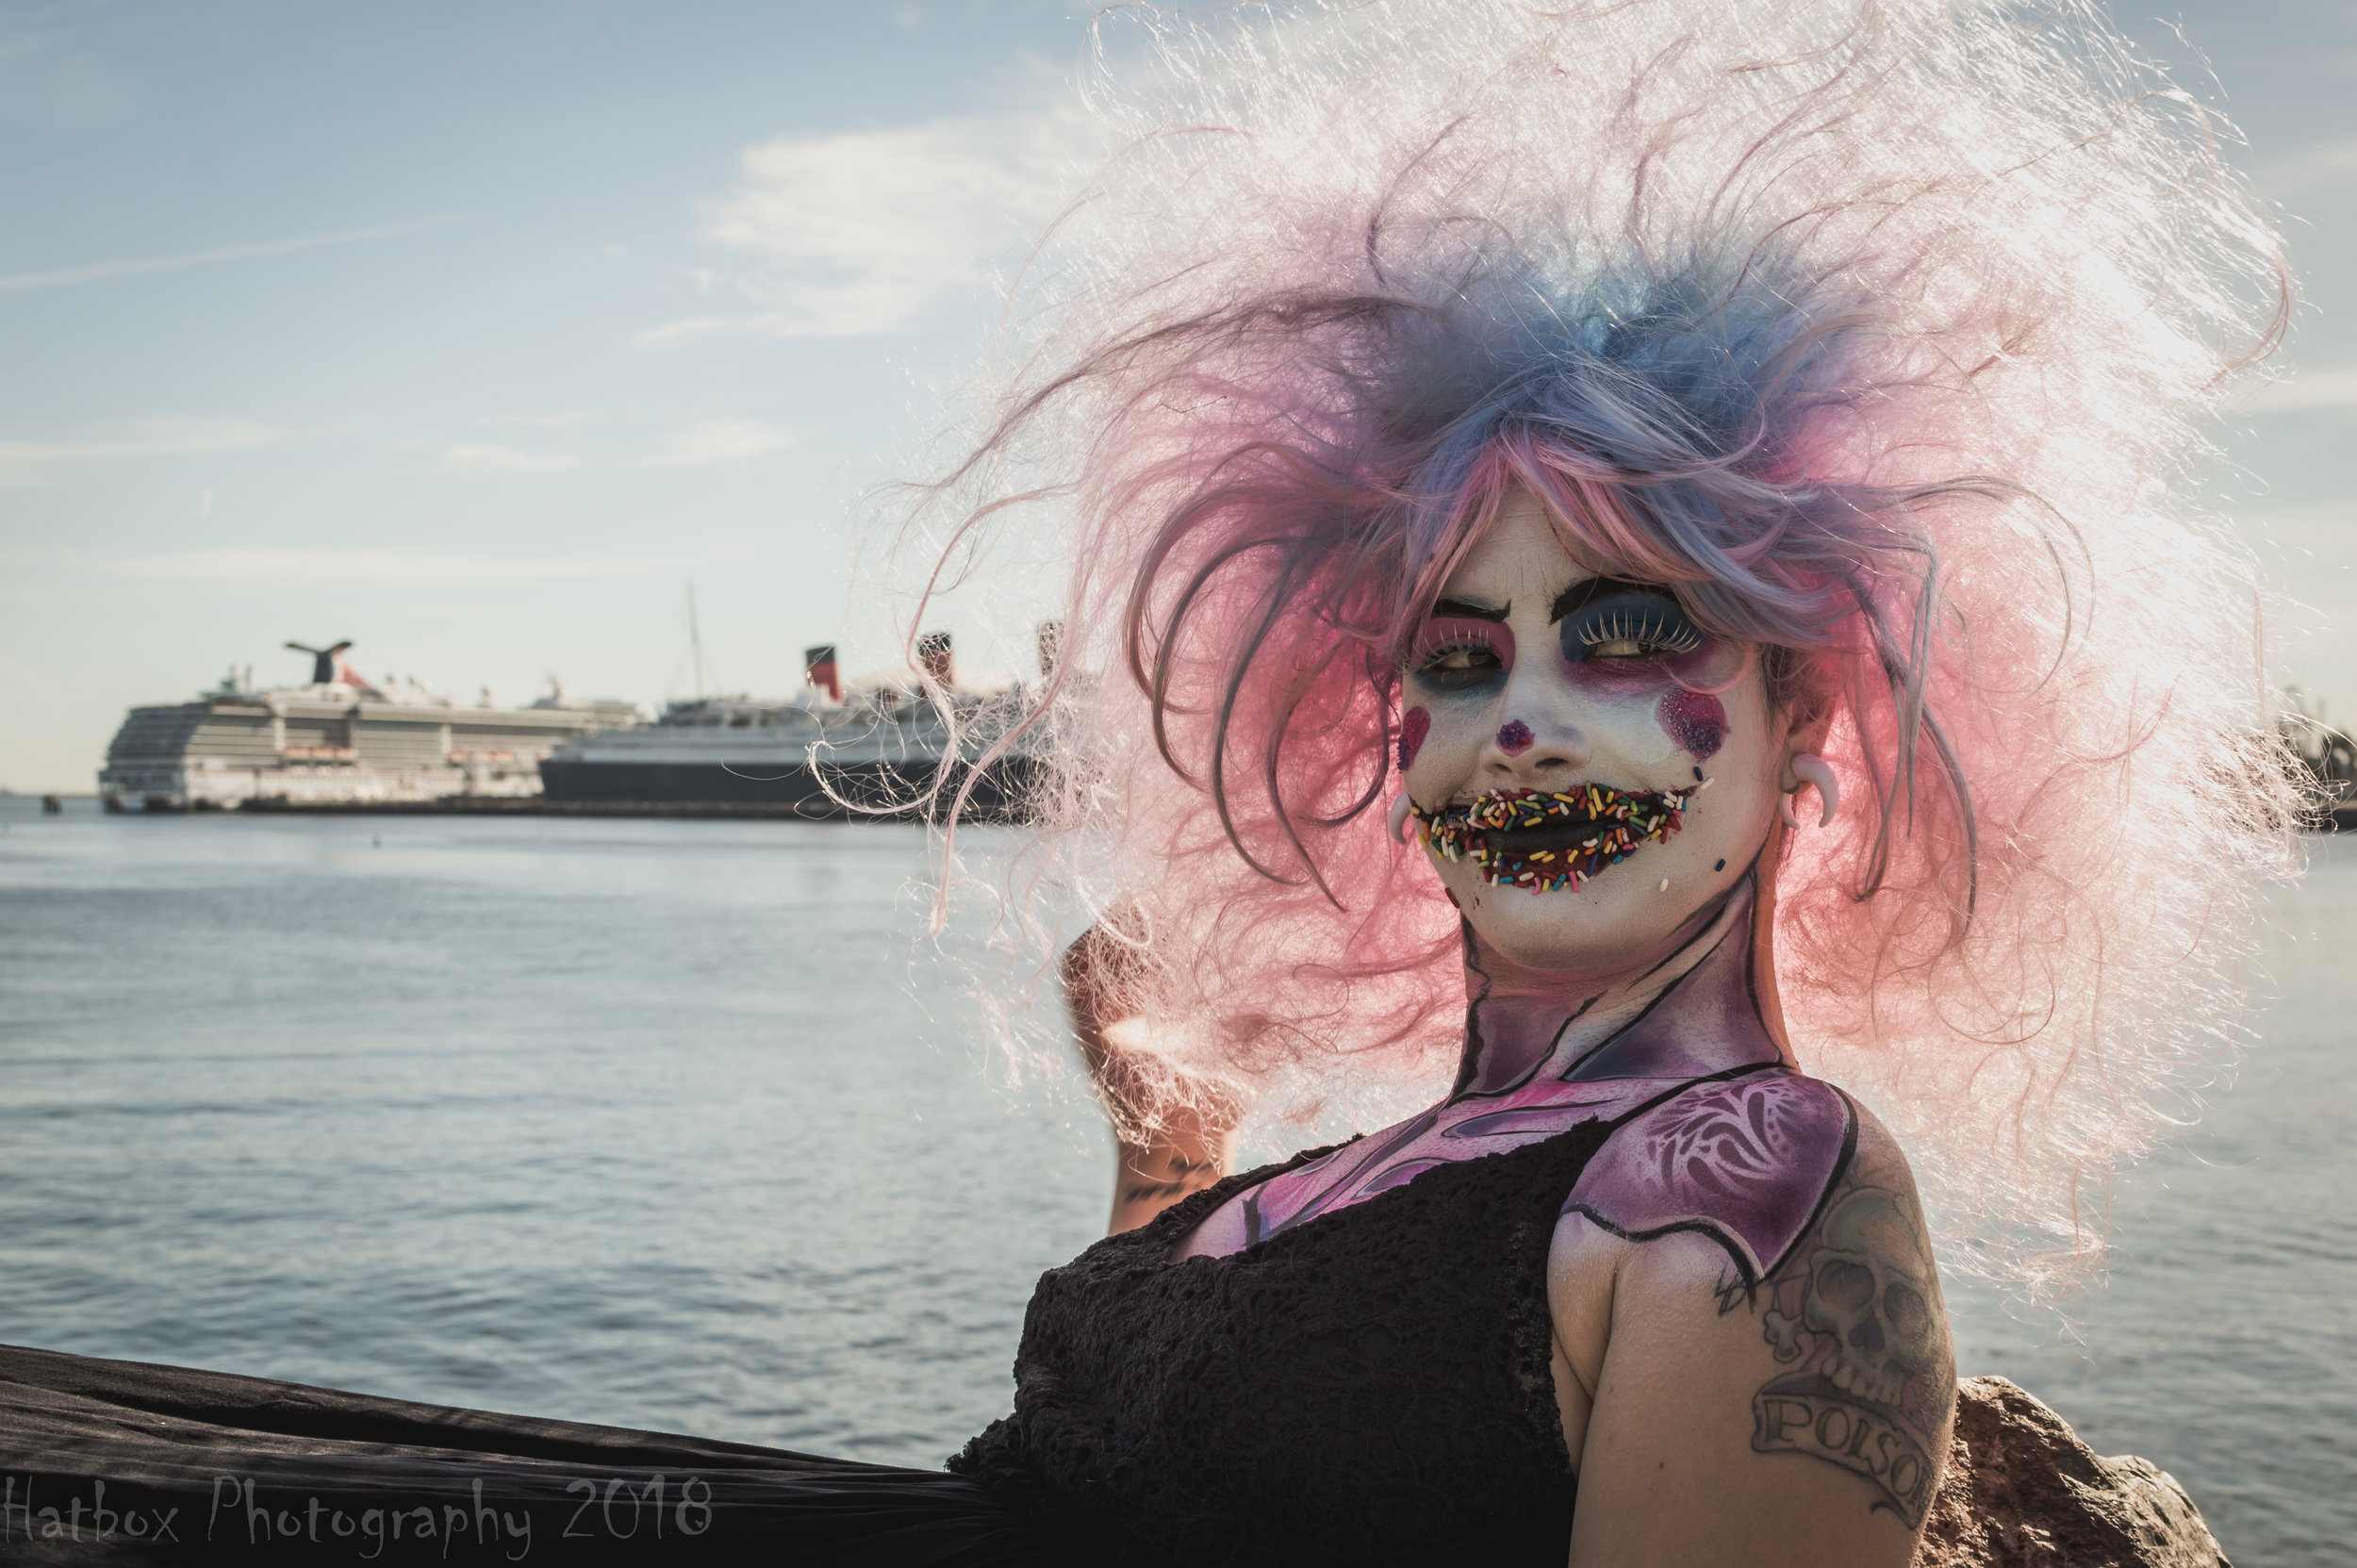 Makeup by the amazingly talented Ericka Acosta (muafxgeek on Instagram). She has done makeup for Knott's Scary Farm and Queen Mary's Dark Harbor. She is also a prop master and body painter. Give her a follow.  Our model is Amanduh (atomic_aerial on Instagram). She is smart, funny, talented and studying to become a dental hygienist. This is the story of how Sprinkles came to be.